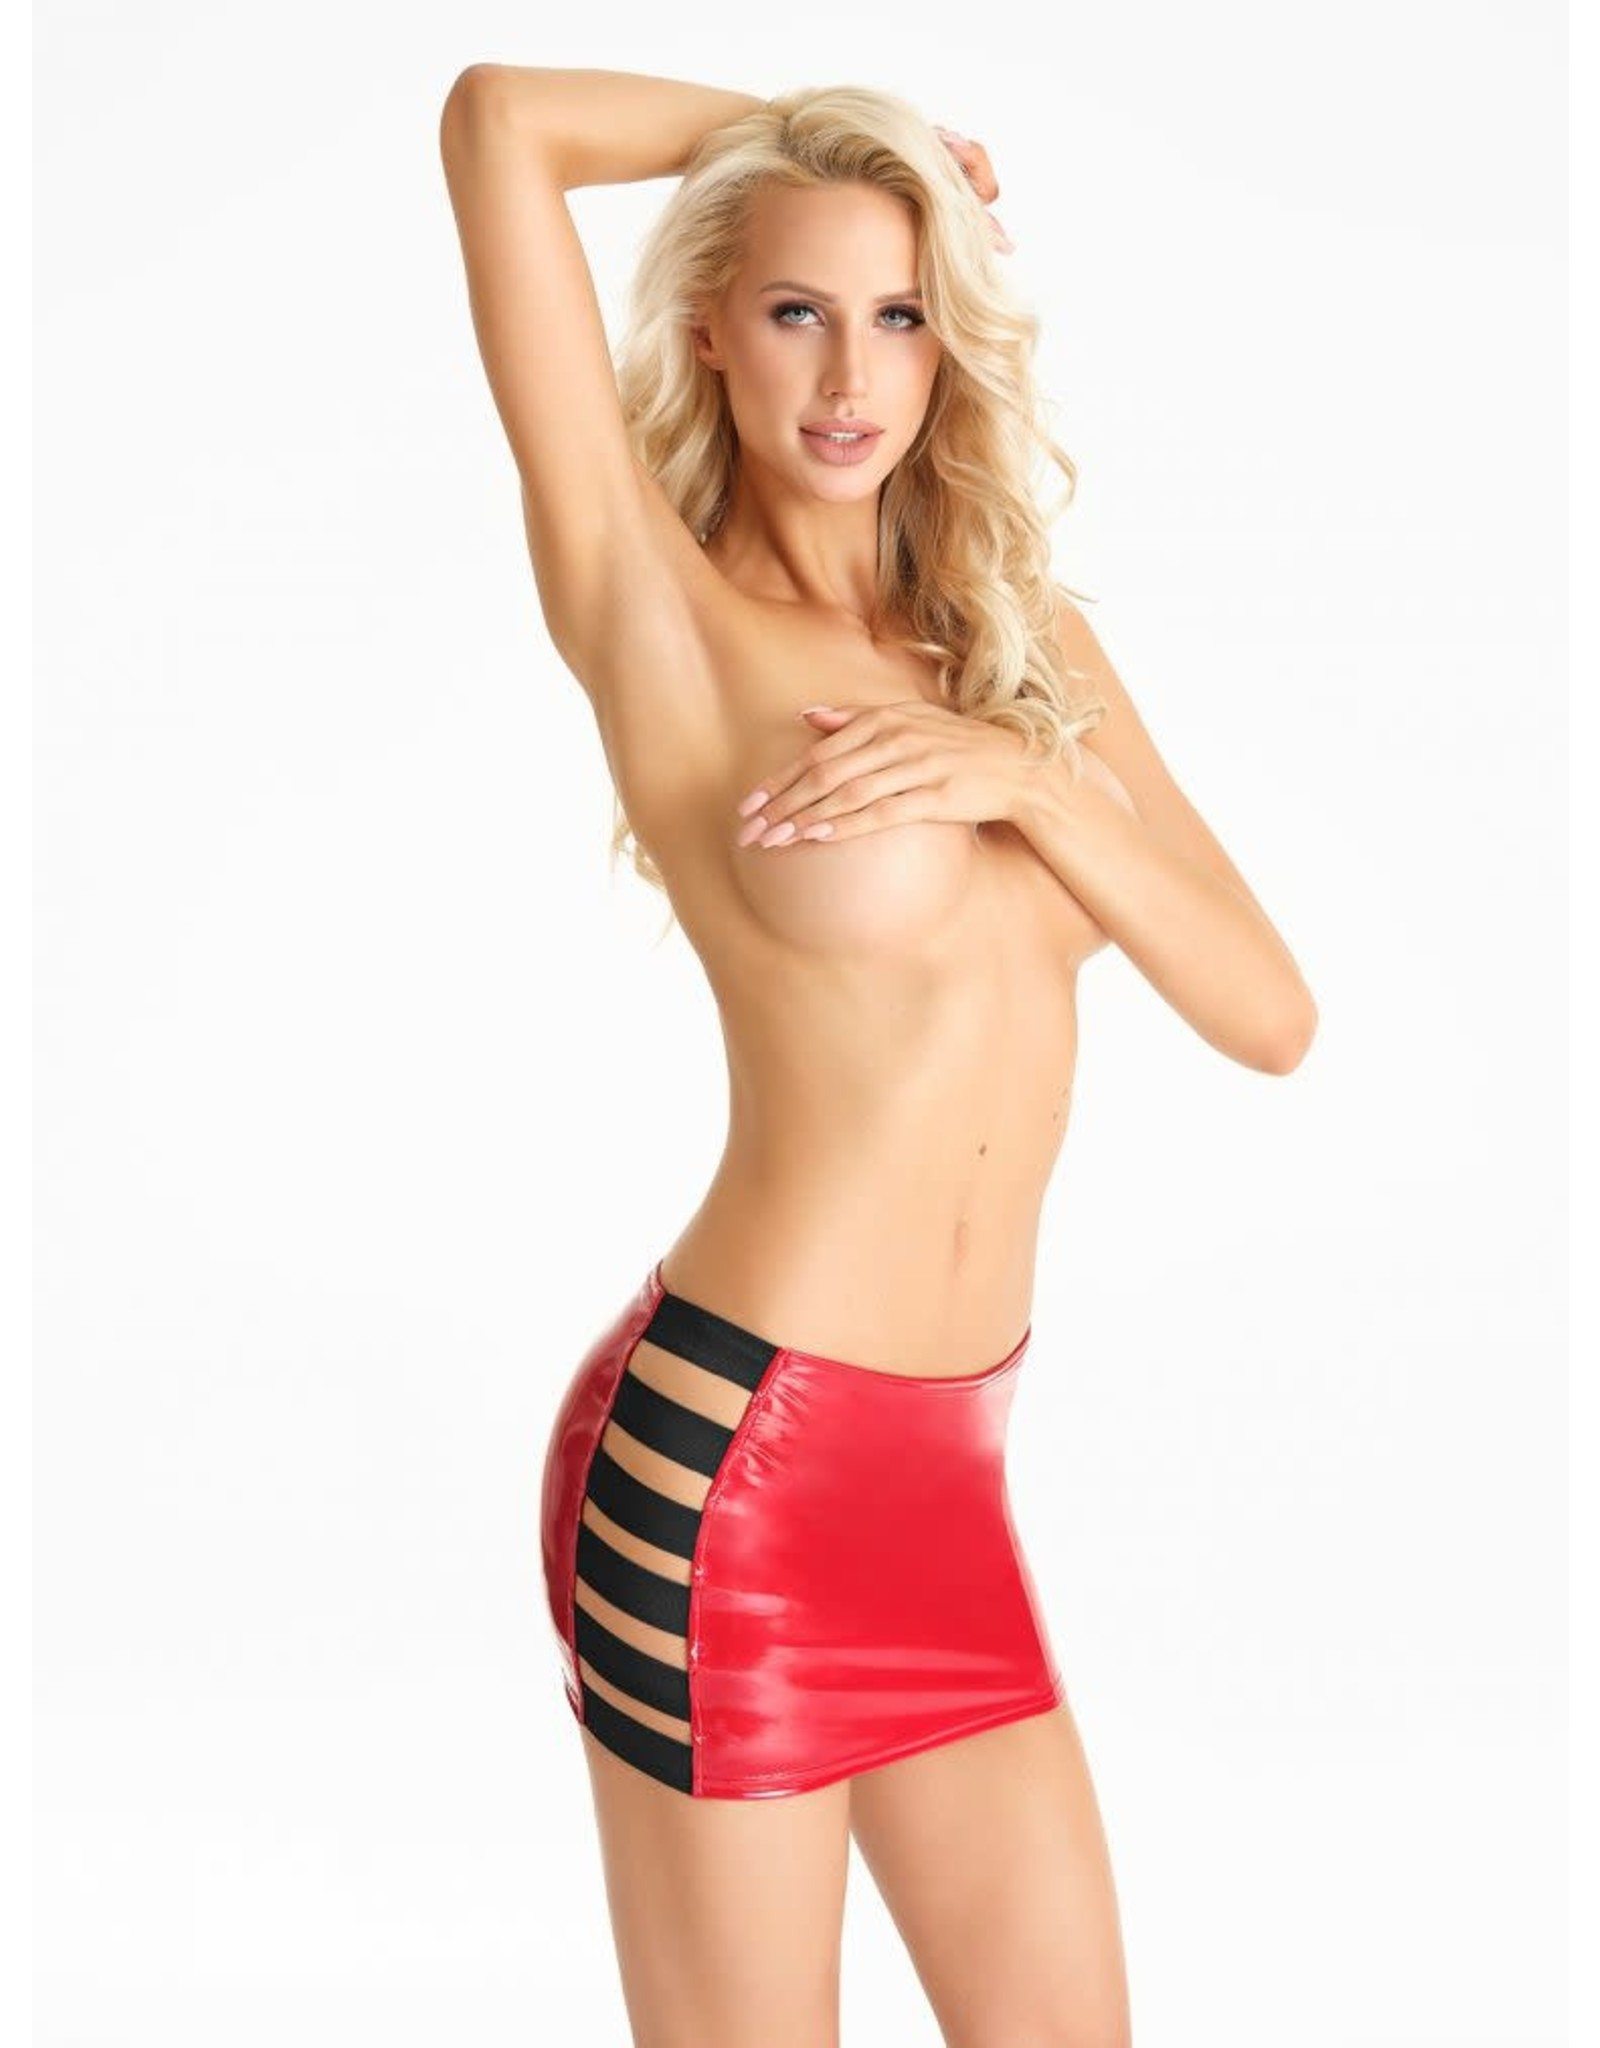 7 HEAVEN - MINI-SKIRT WITH ELASTIC SIDES - RED - MEDIUM